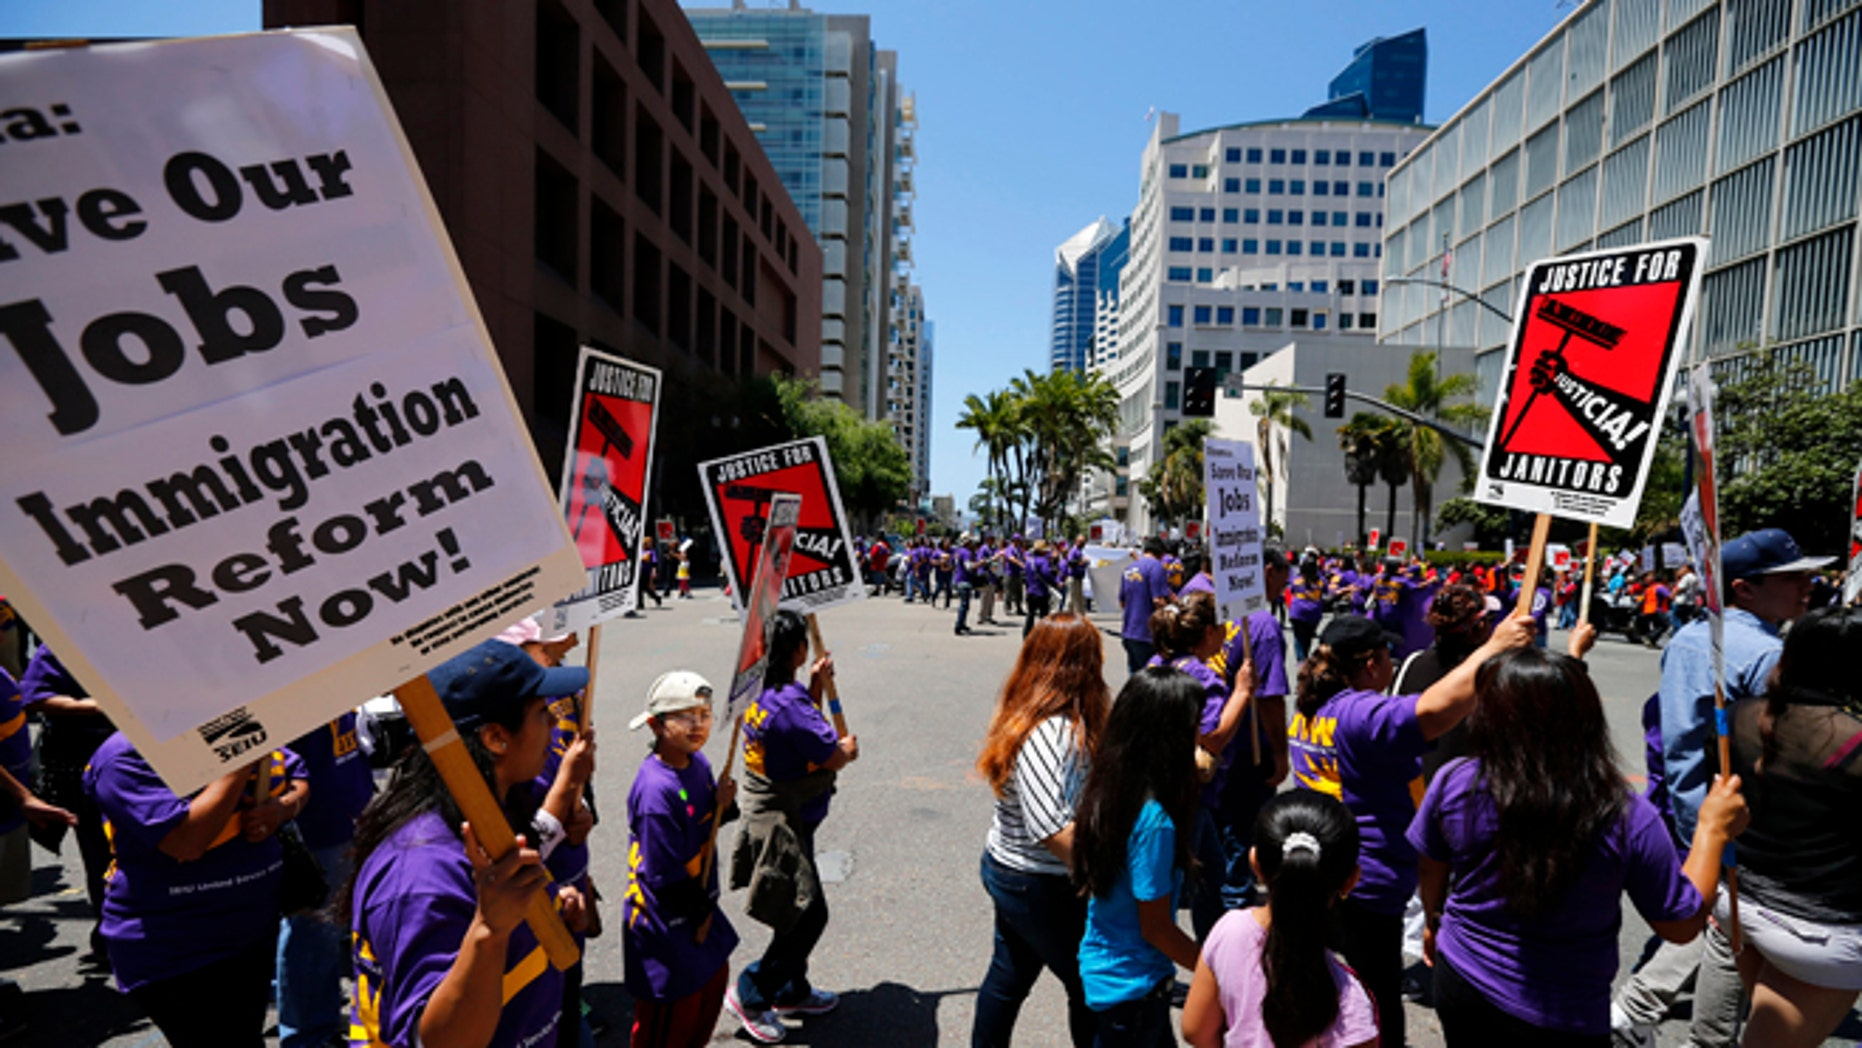 April 26, 2013: Immigrant families, workers and supporters march in San Diego.